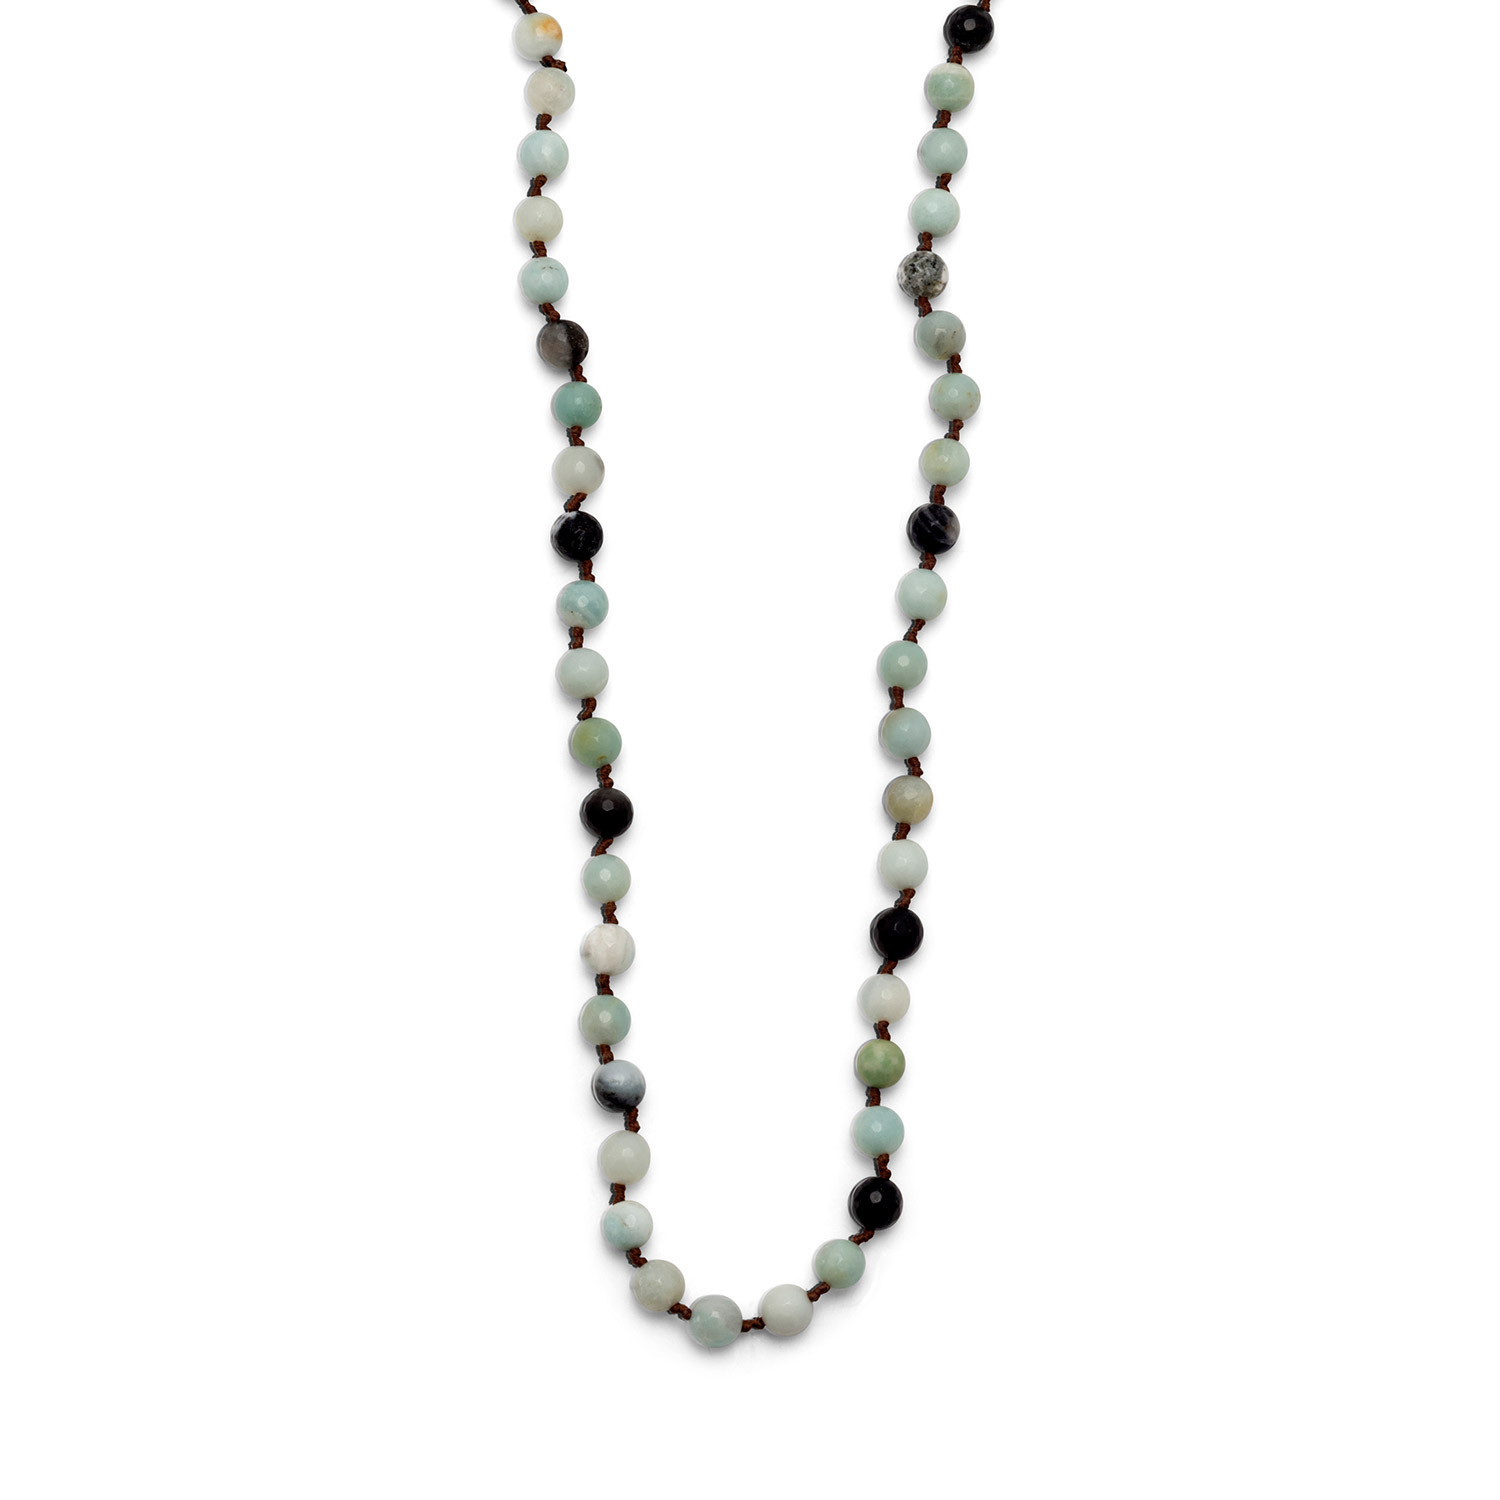 Faceted Beaded Amazonite Necklace Knotted 38 inches